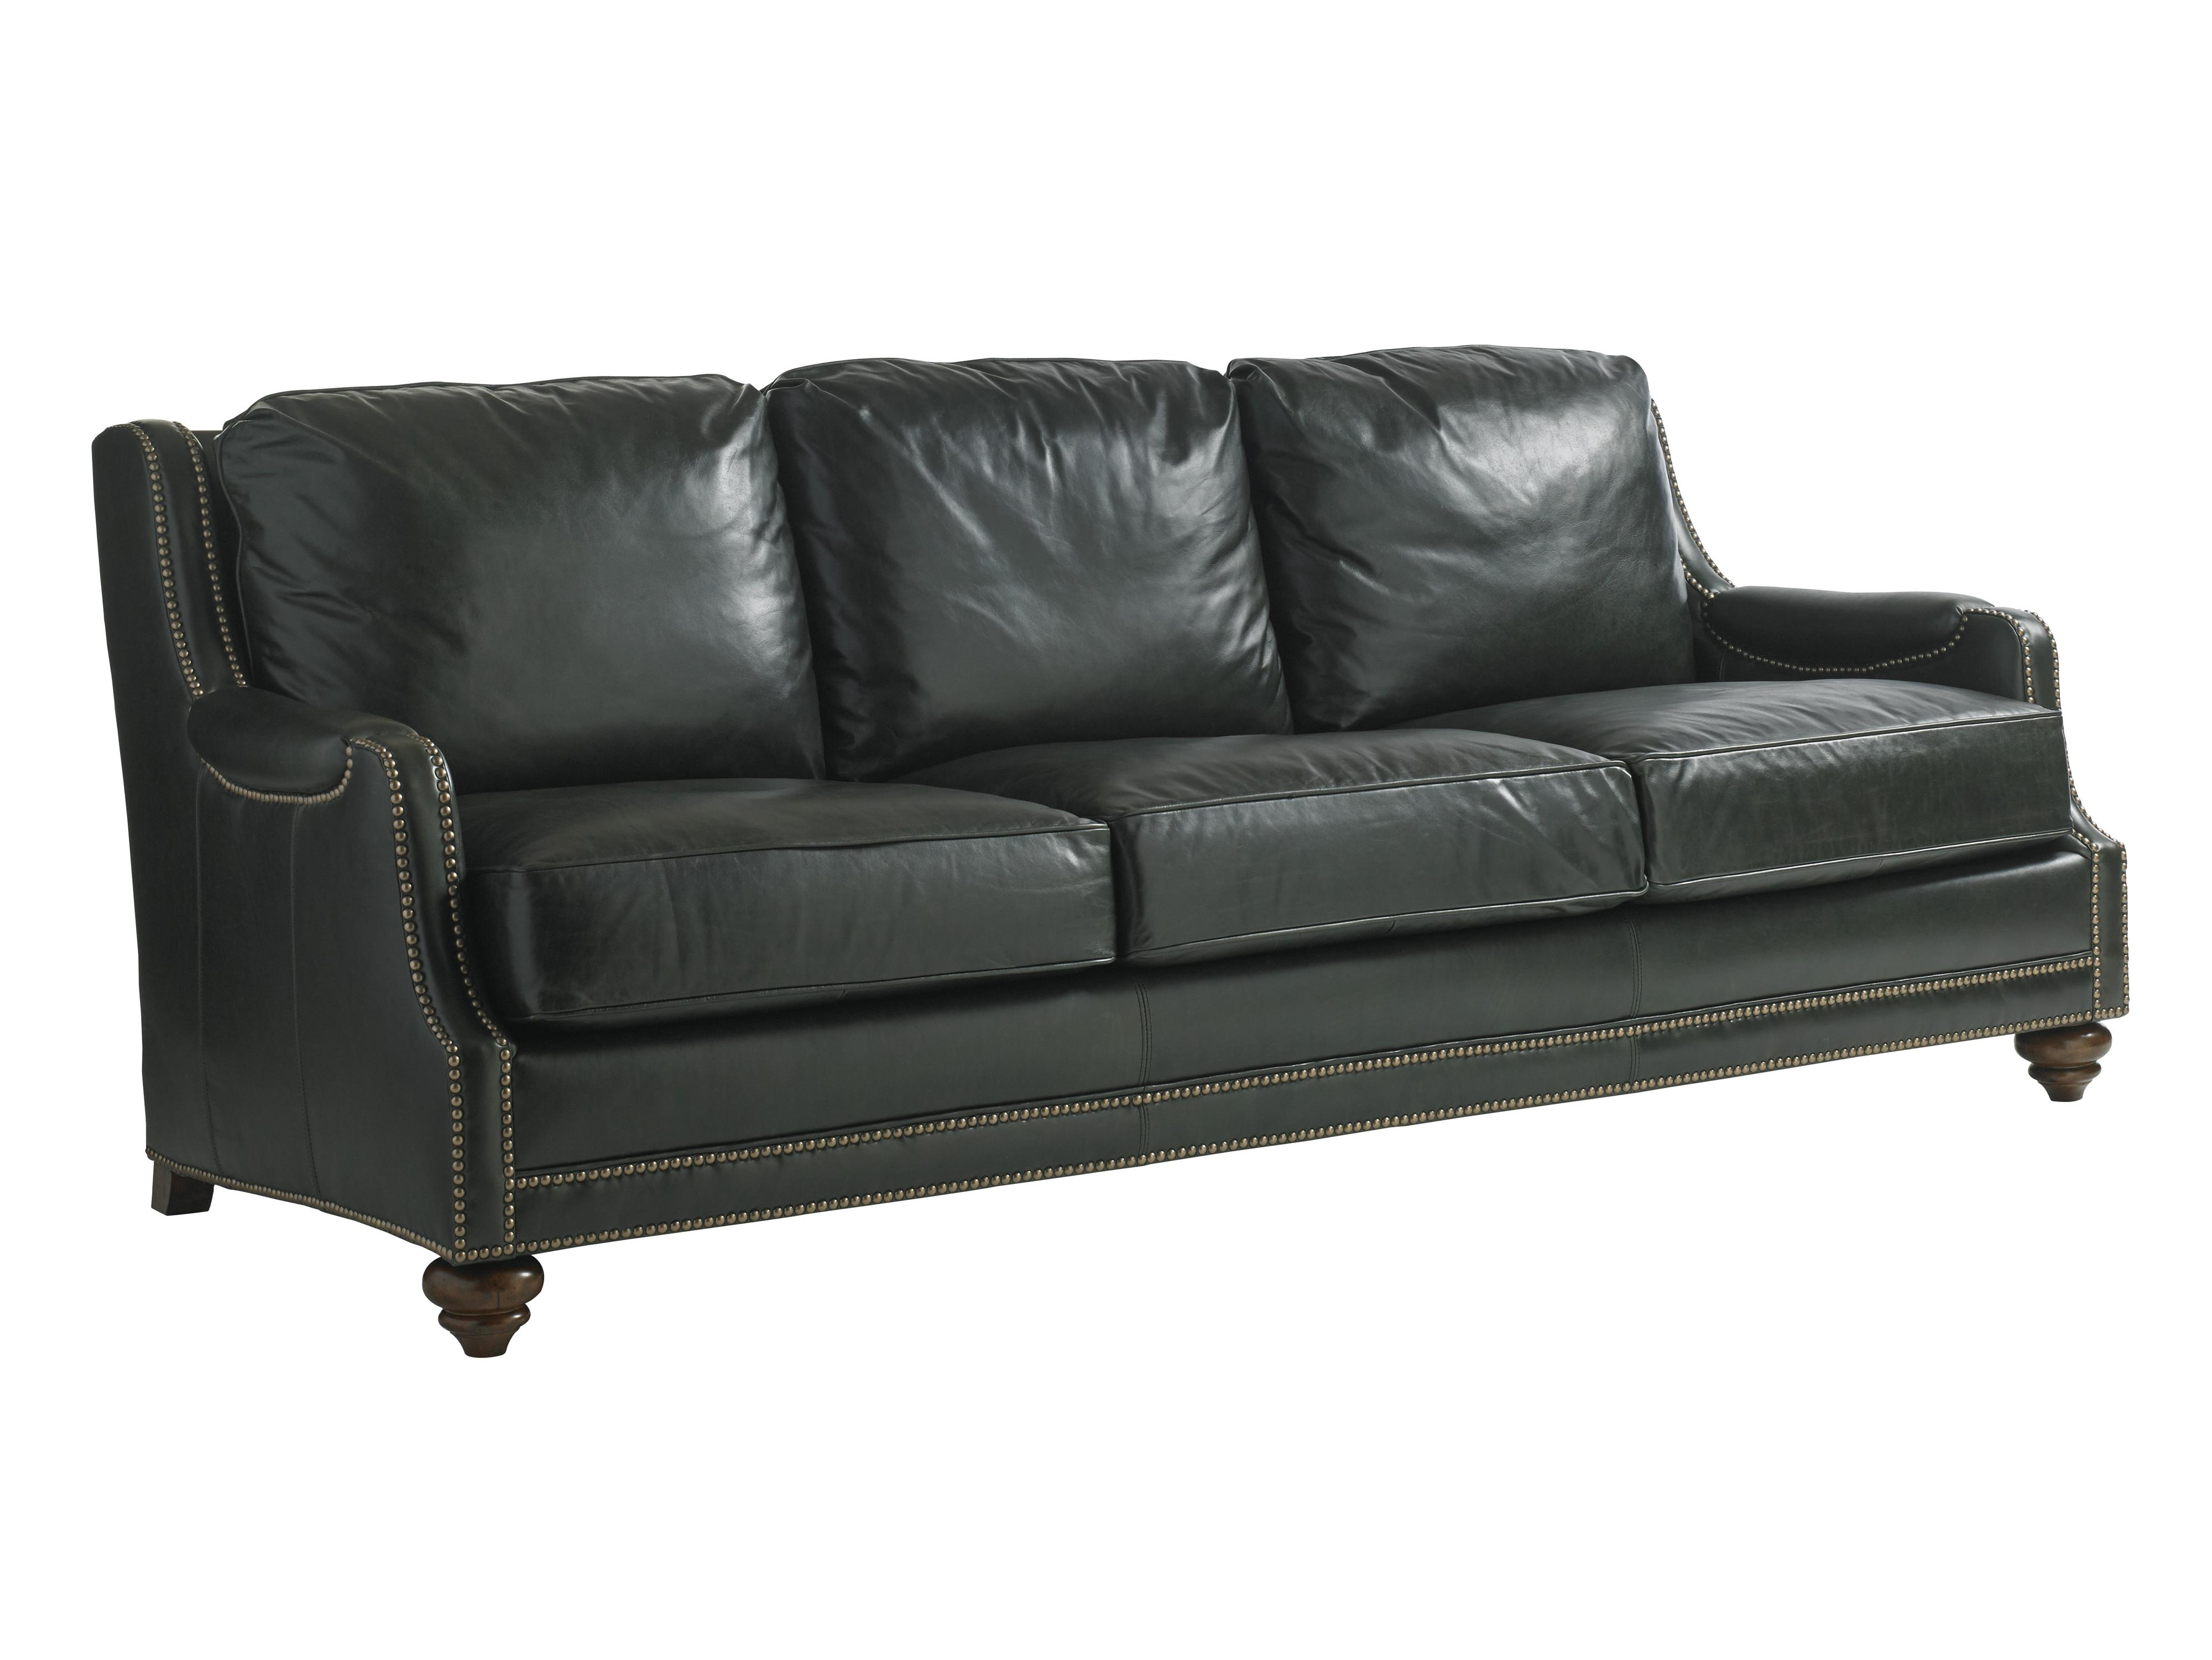 Lexington Coventry Hills Alcot Leather Sofa - Item Number: 7572-33-01